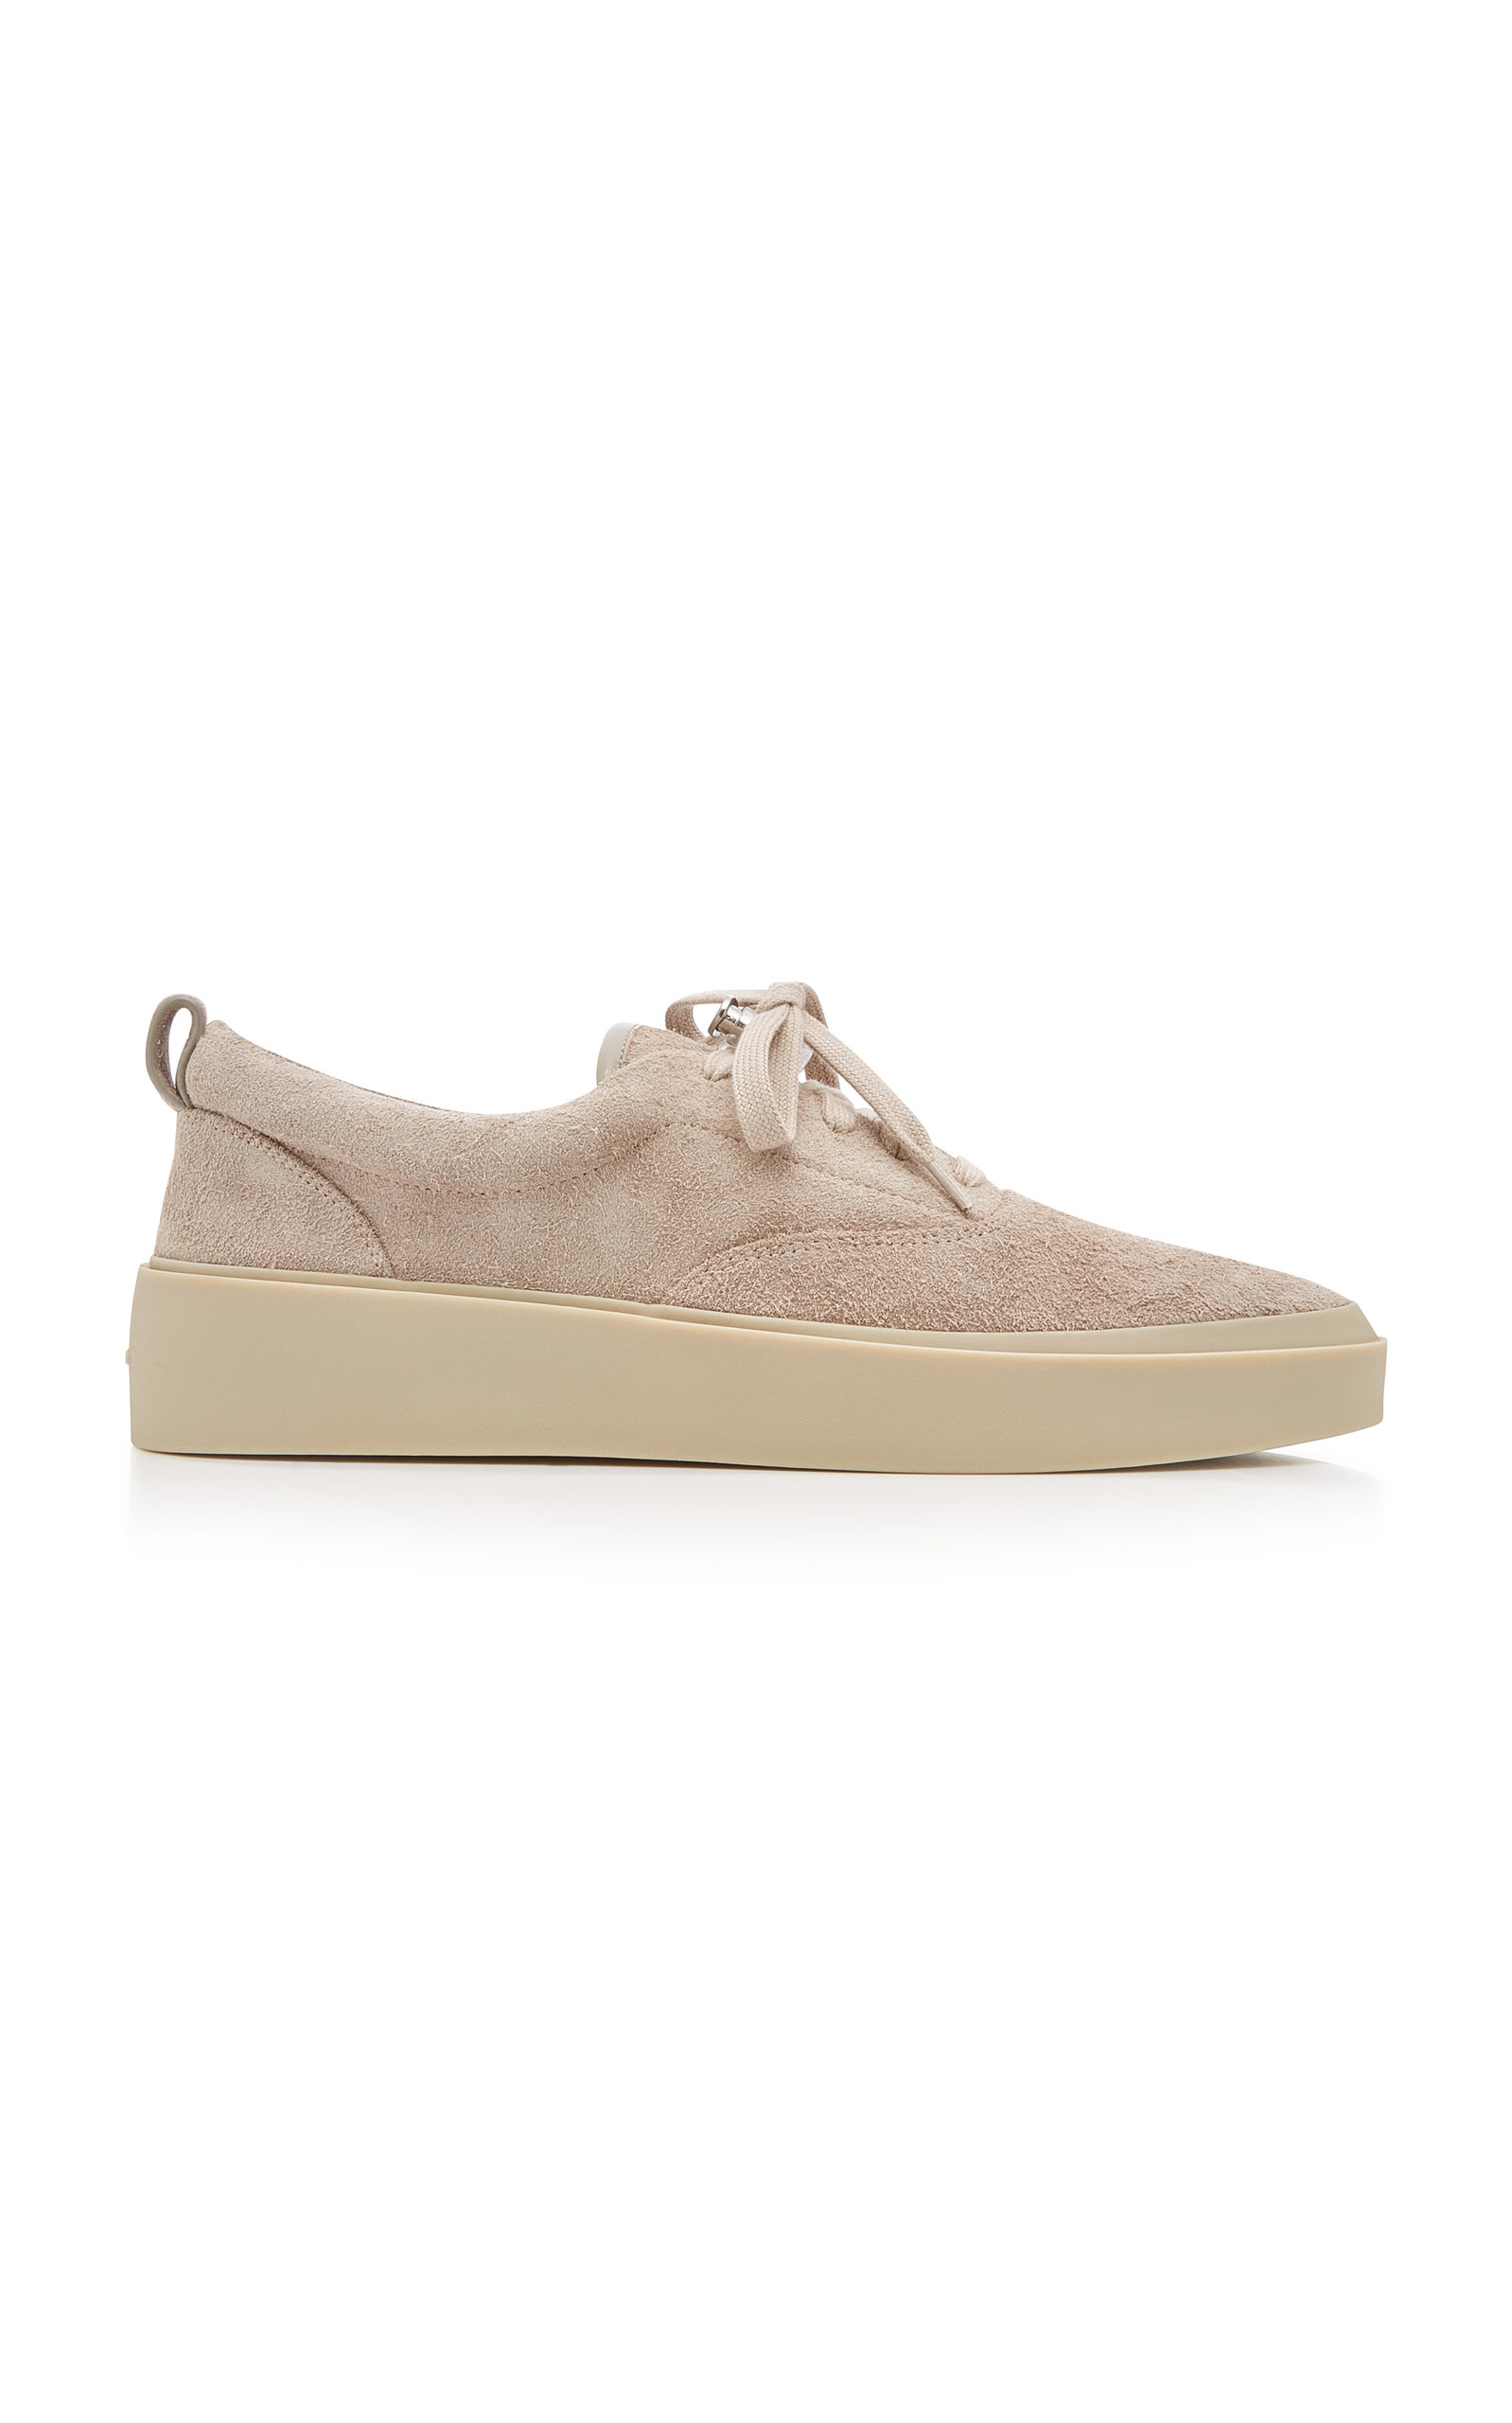 Fear Of God Sneakers 101 Suede Low-Top Sneakers